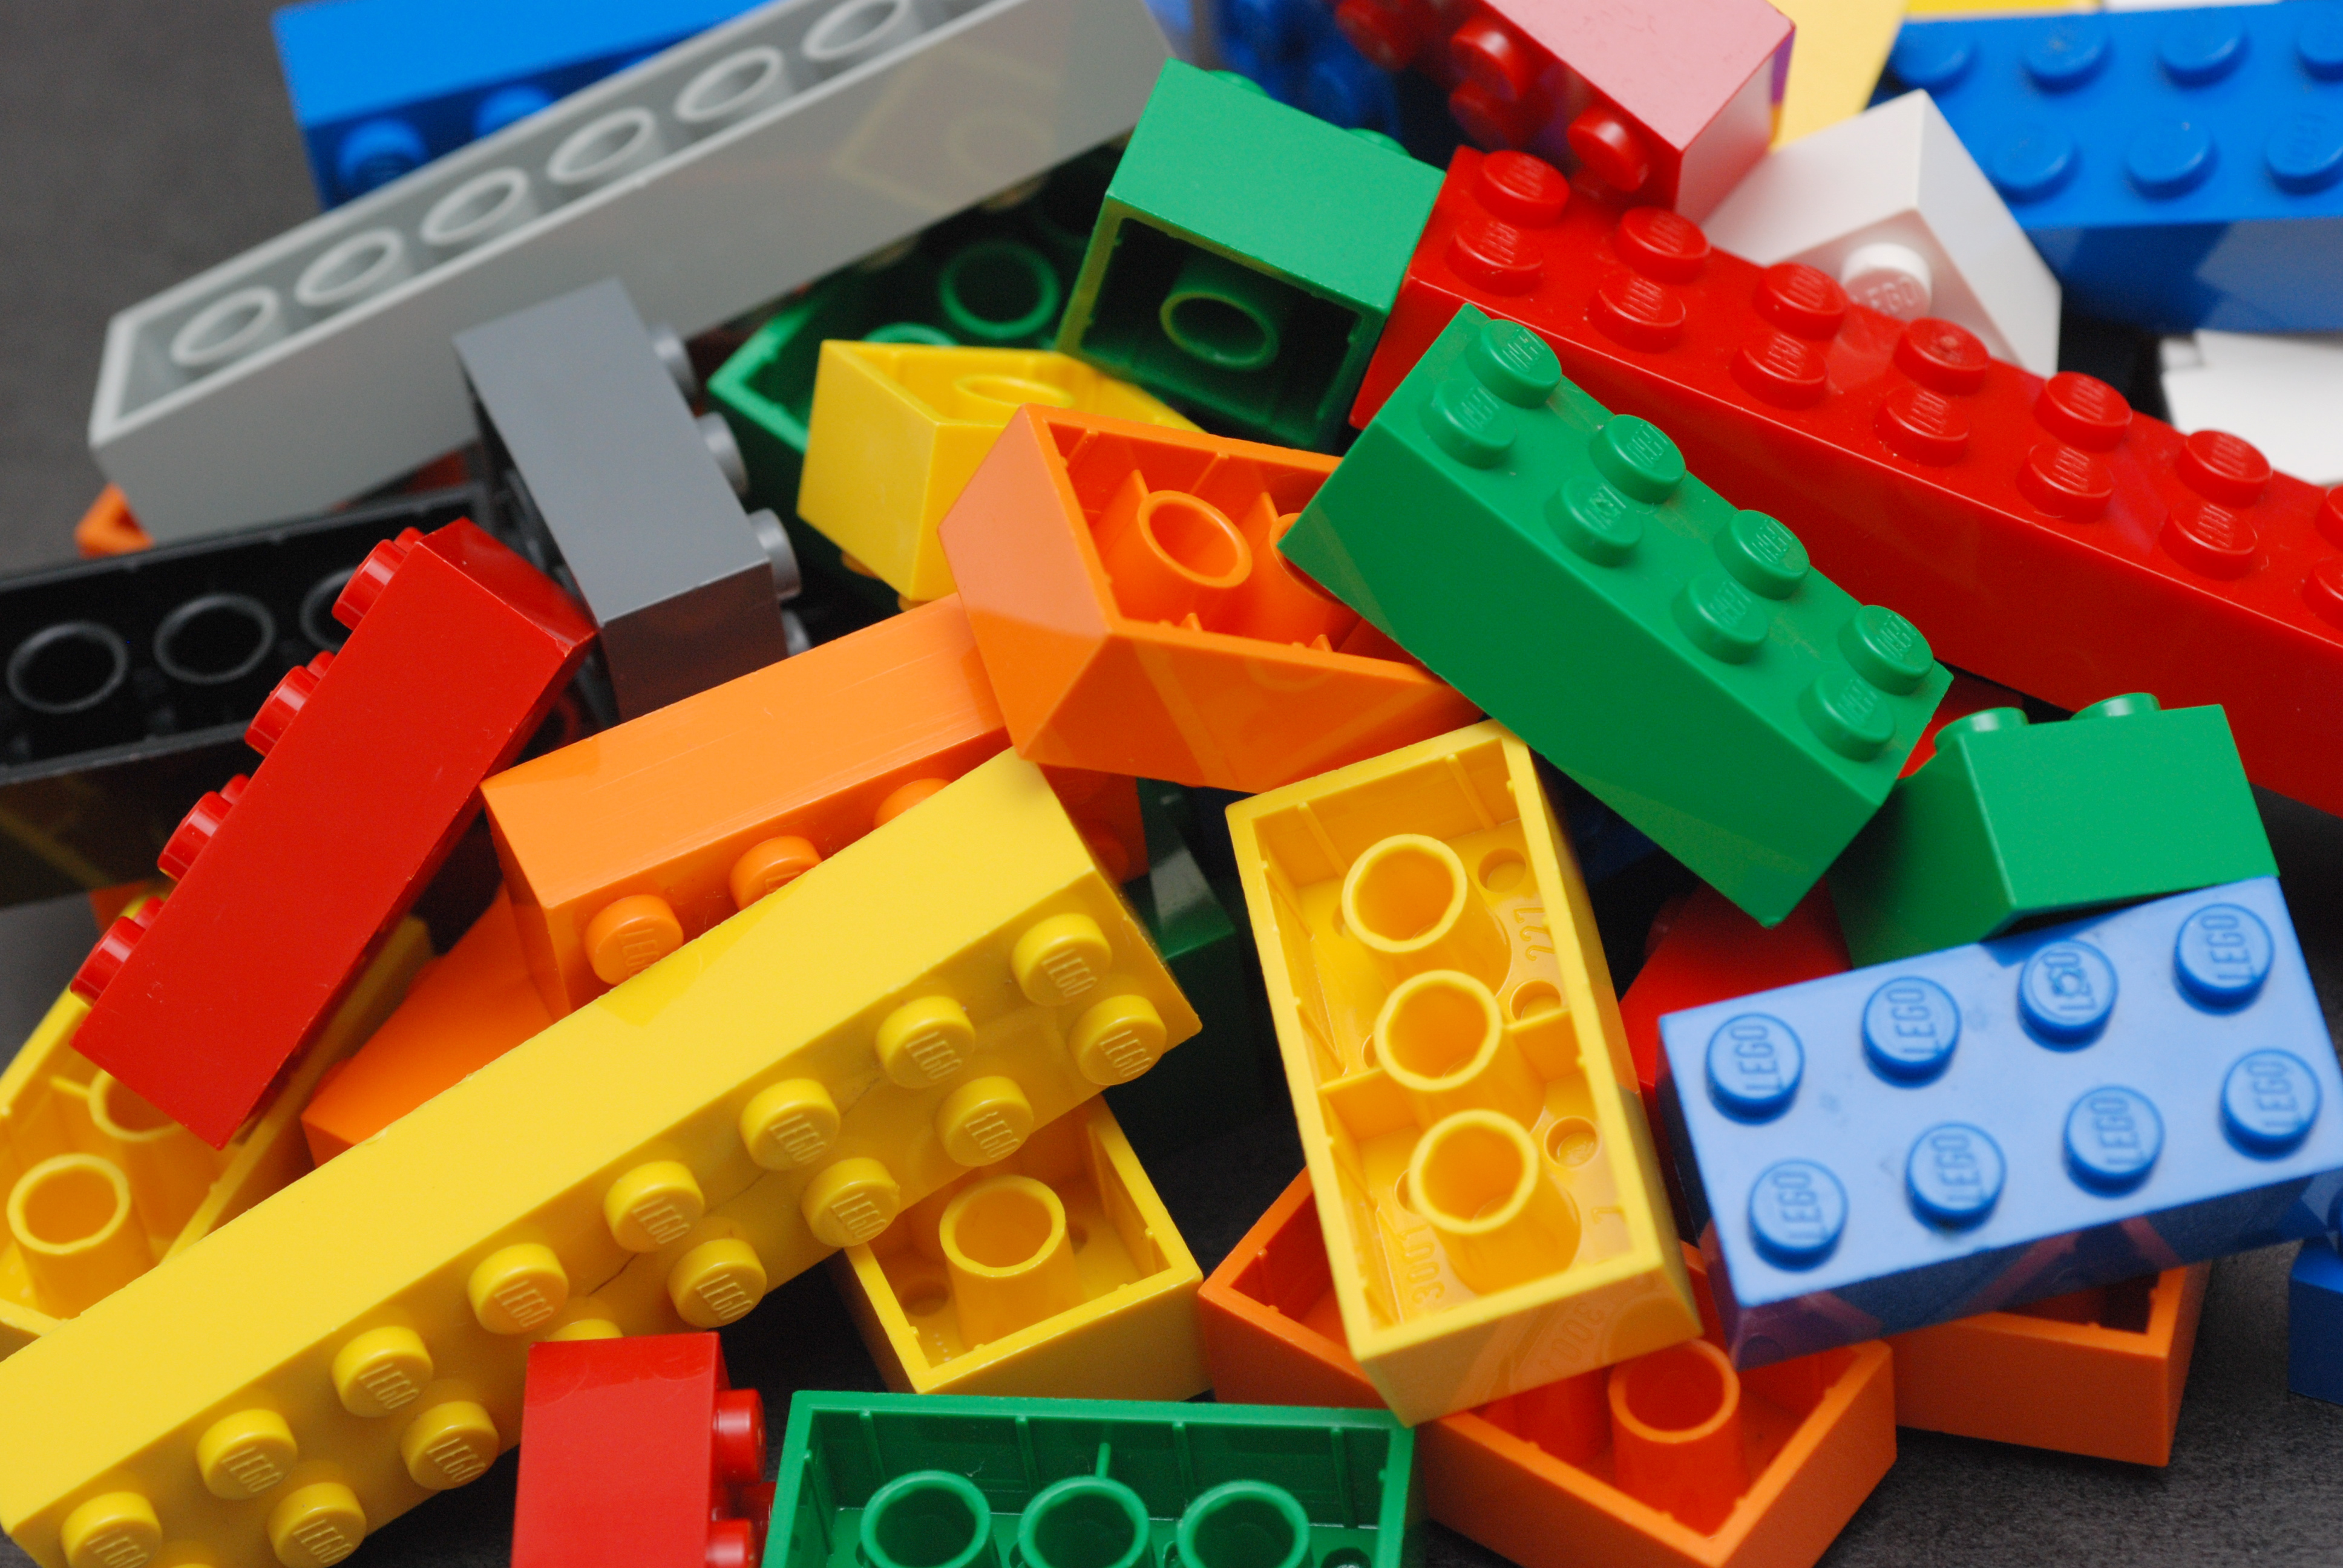 A selection of LEGO bricks in various sizes and colours. There have been over 560 billion LEGO parts produced since 1949.